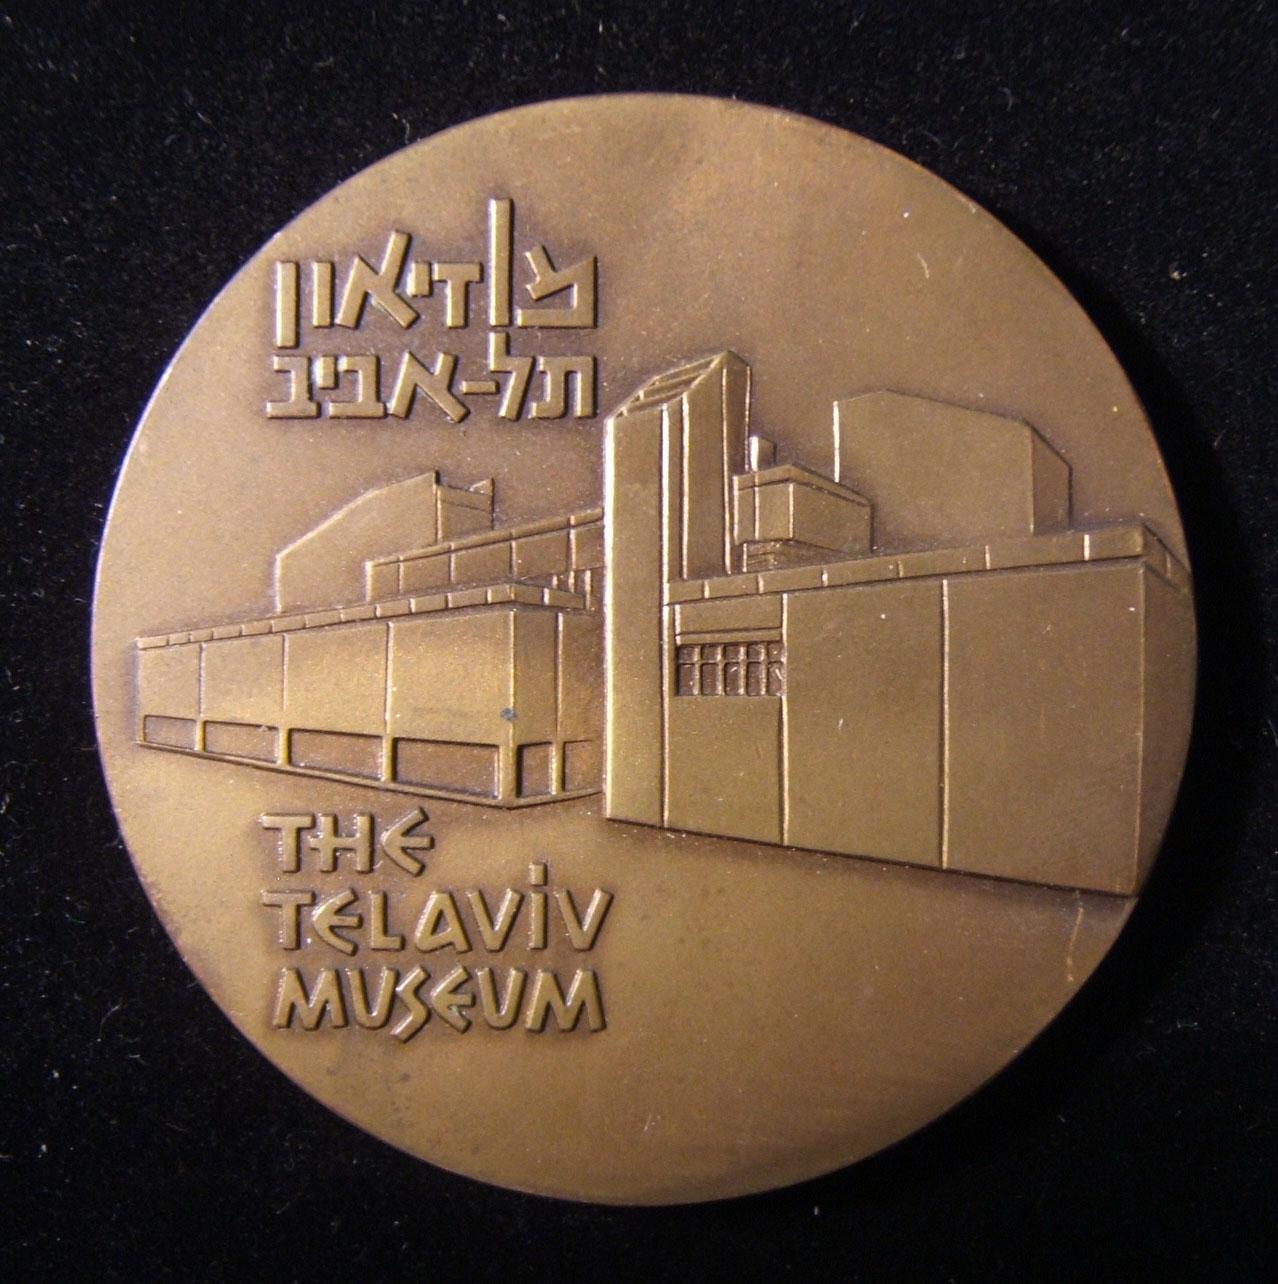 Israel: Tel Aviv Museum inauguration medal in tombac, 1971; obverse design Rothschild and Lippman, reverse design by the Shamir Brothers; size: 59.5mm; weight: 96.7g. Unnumbered ty